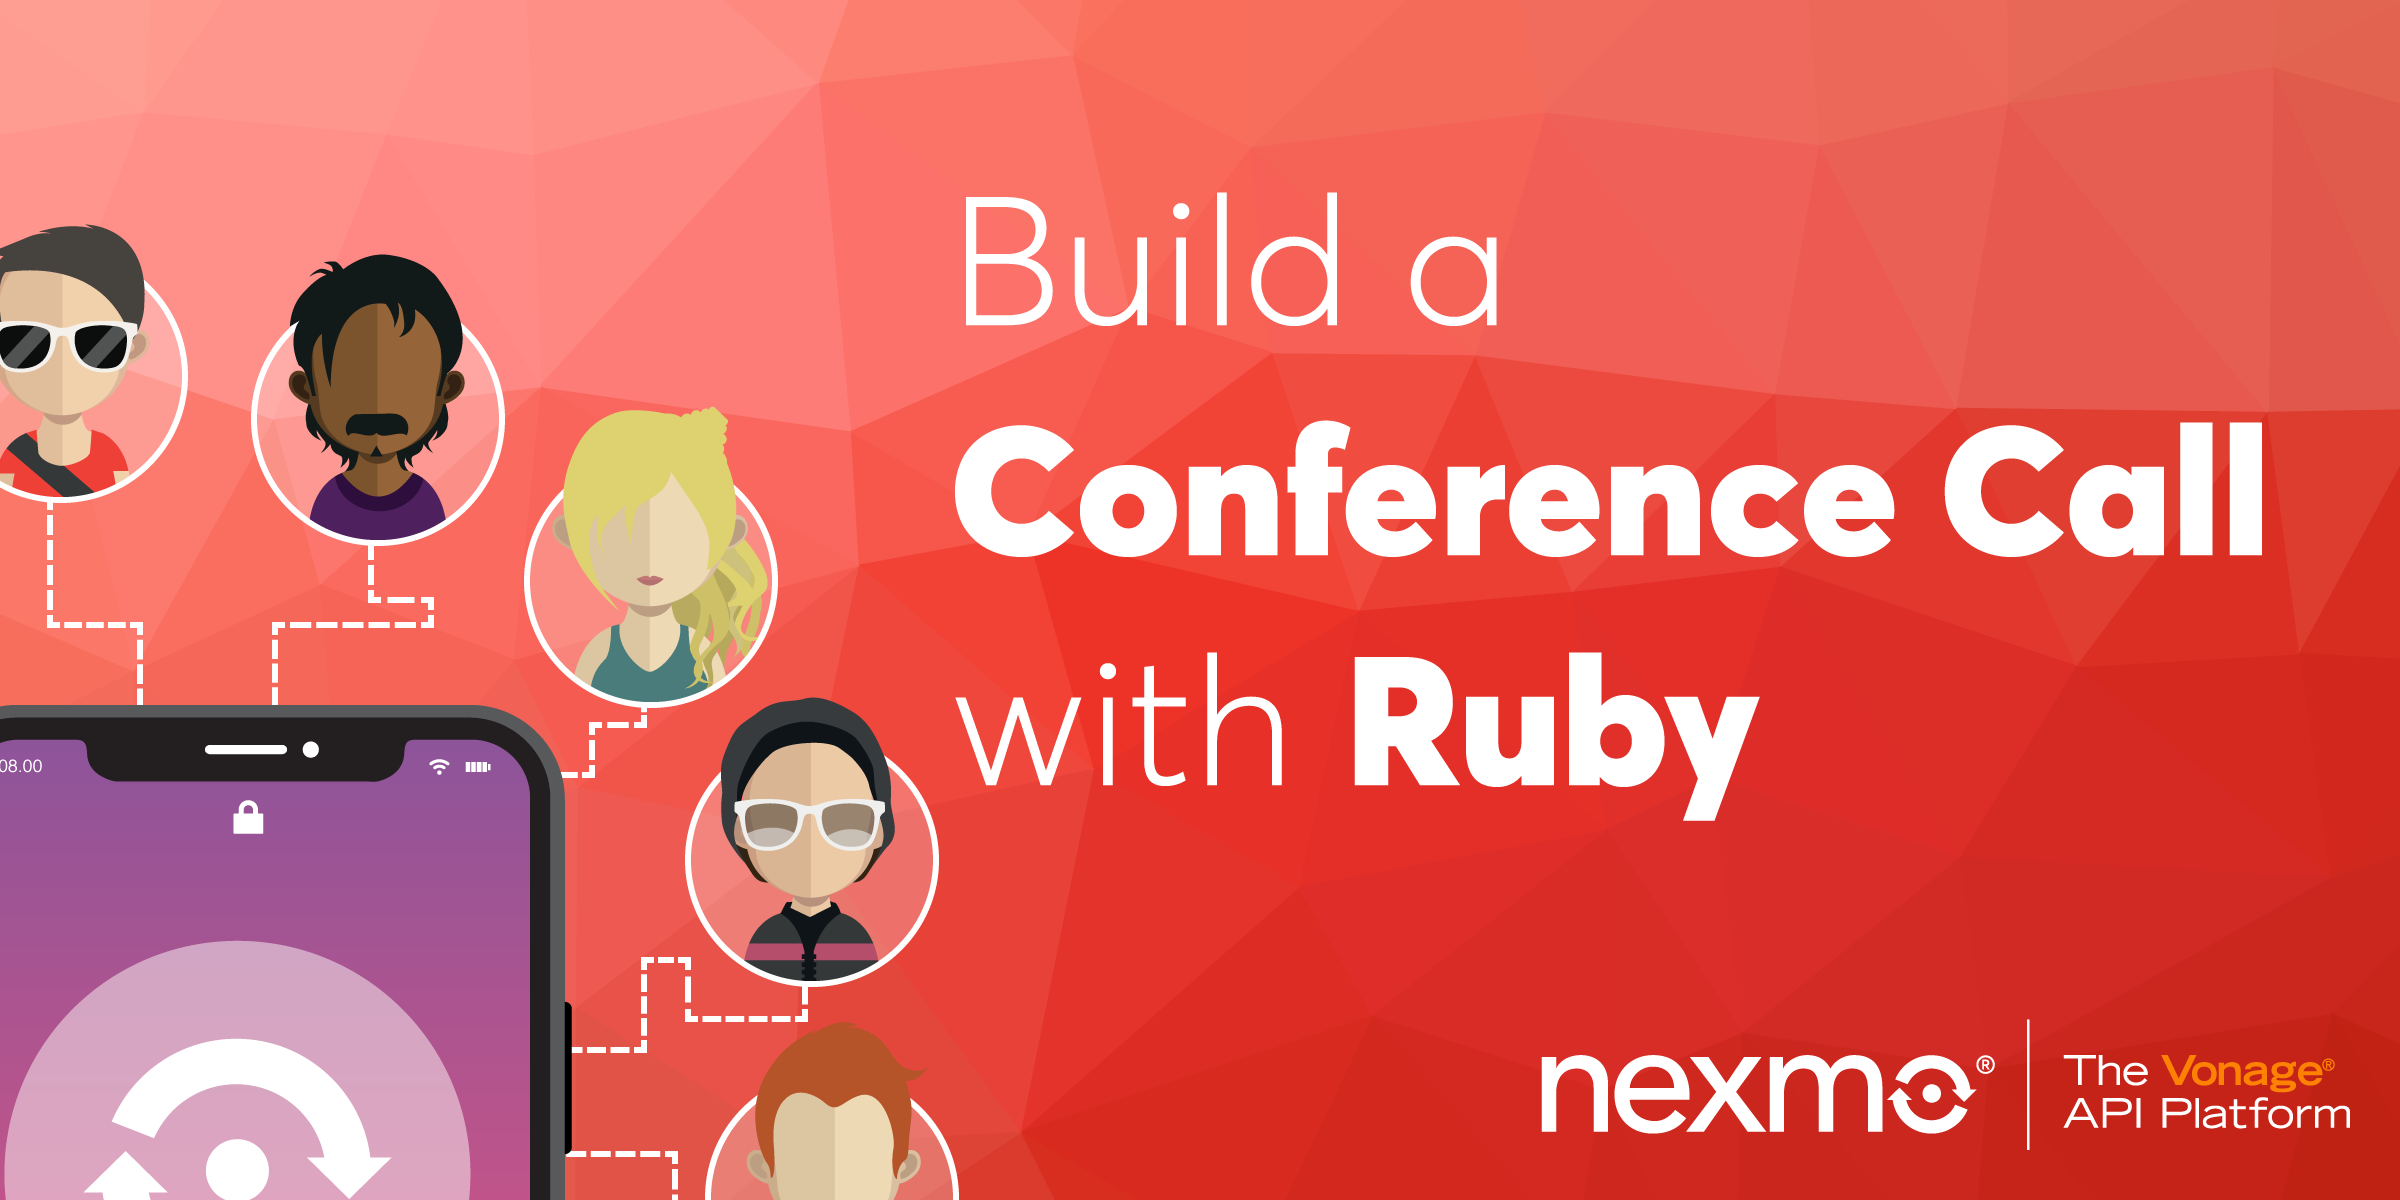 Build a Conference Call with the Nexmo Voice API and Ruby on Rails